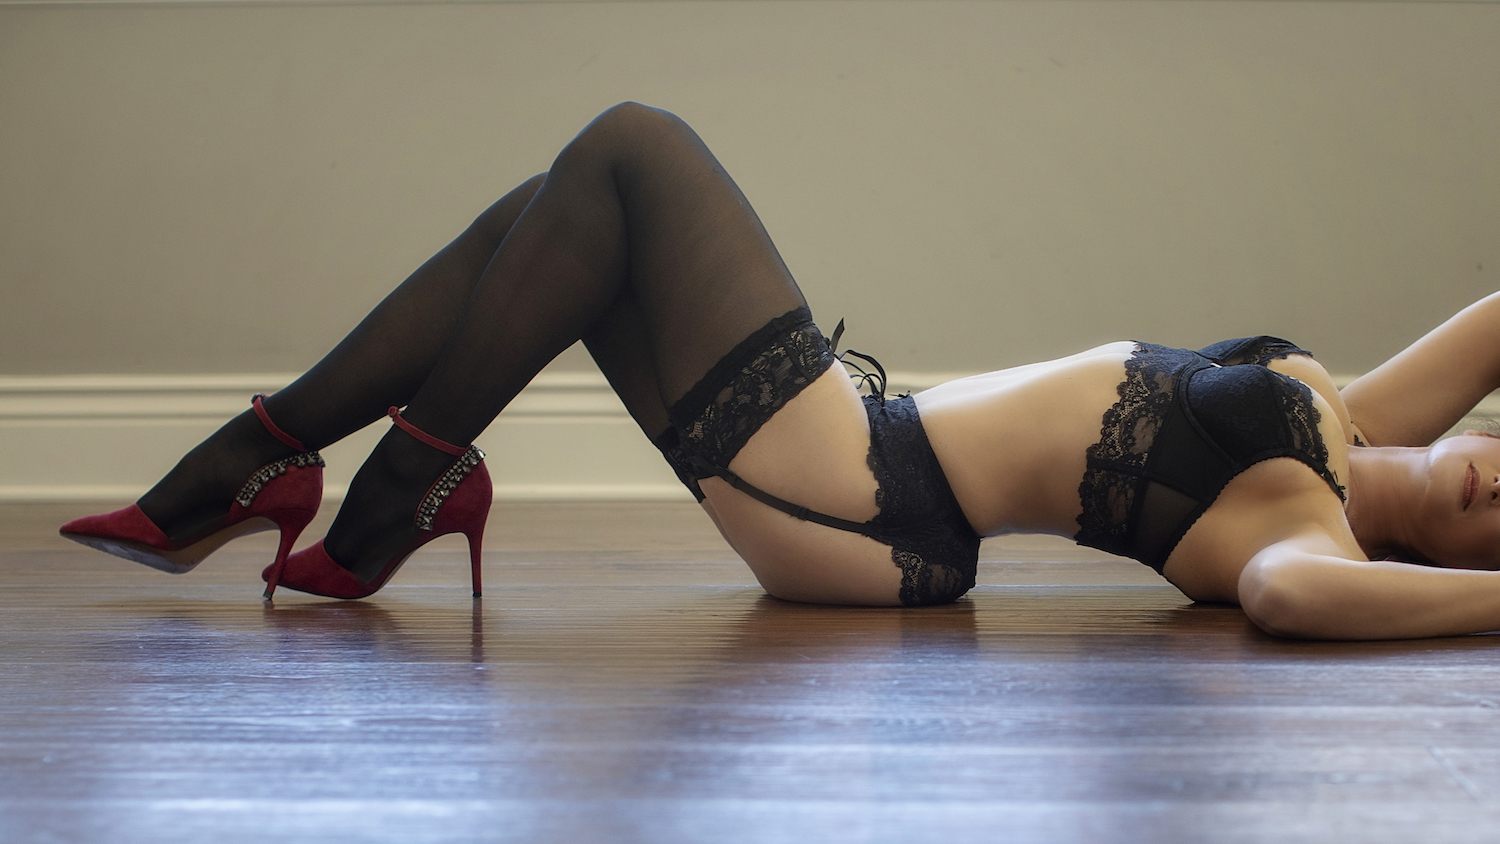 Sexy boudoir photo of a woman on a wooden floor with black lingerie and red heels.